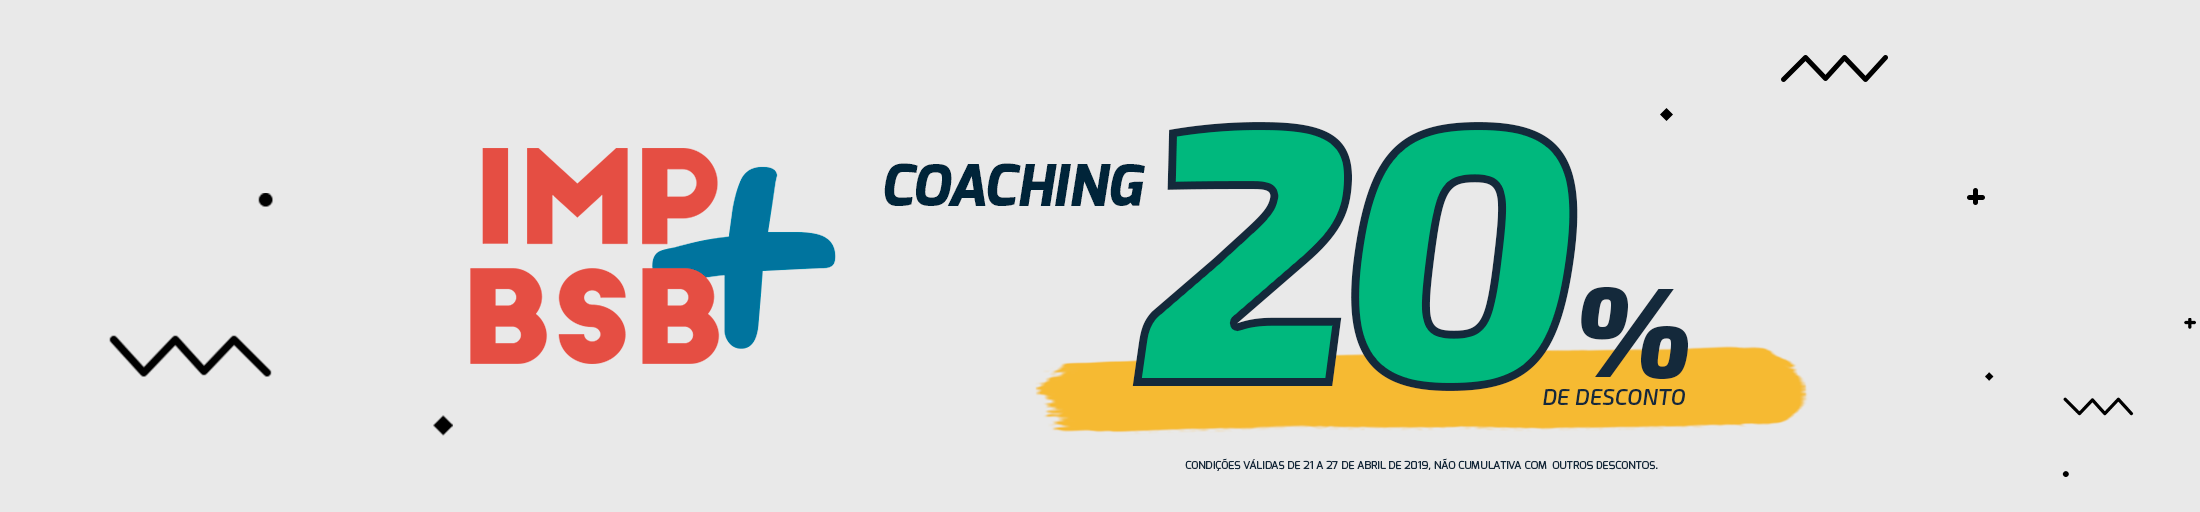 BANNER-SITE-COACHING